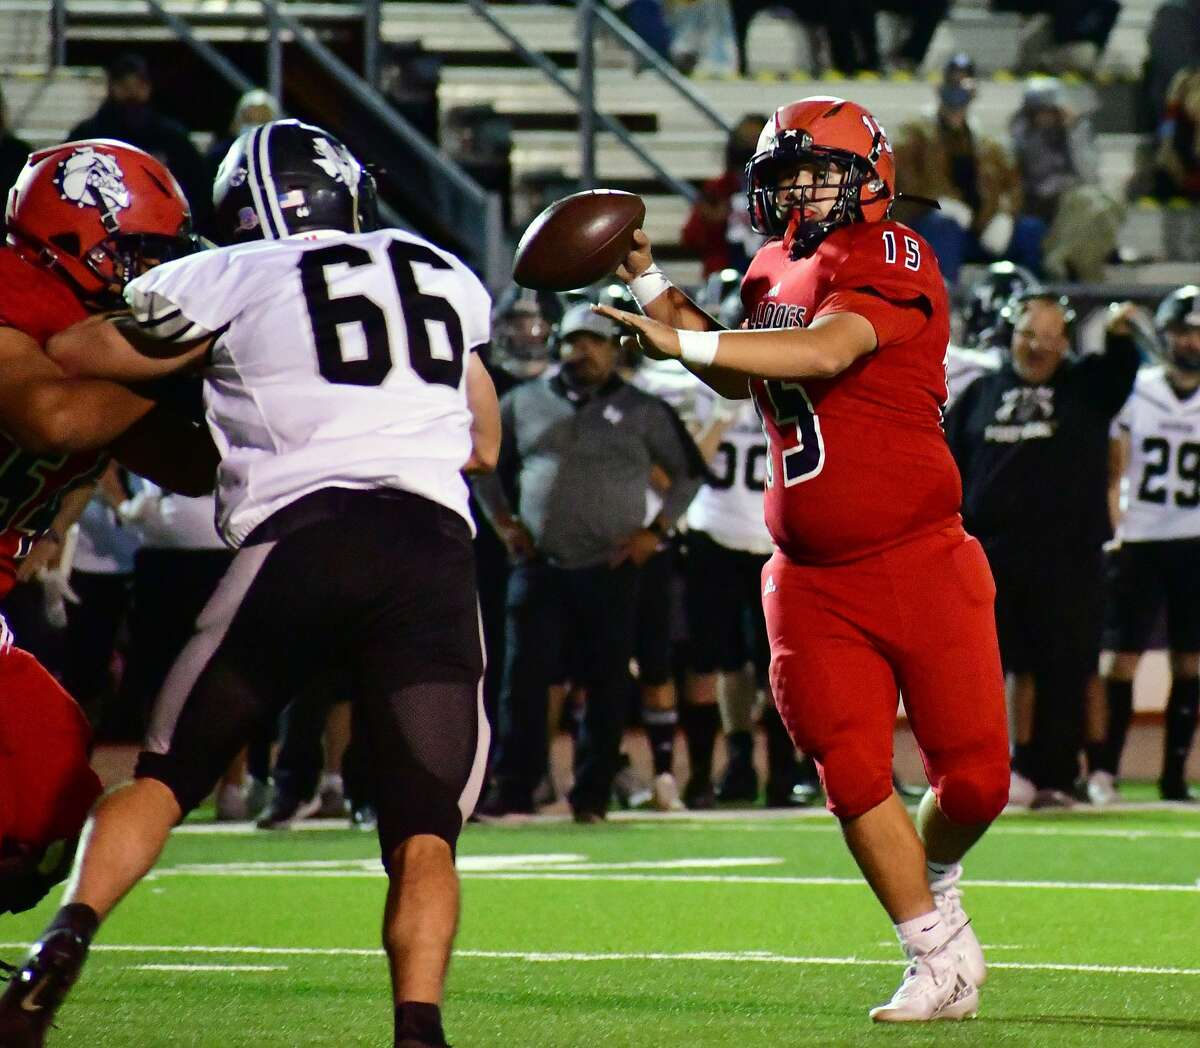 Plainview's Issac Garza tries to find a receiver on a pass play during a District 3-5A Division II football game against Canyon Randall on Friday, Nov. 6, 2020 in Greg Sherwood Memorial Bulldog Stadium.